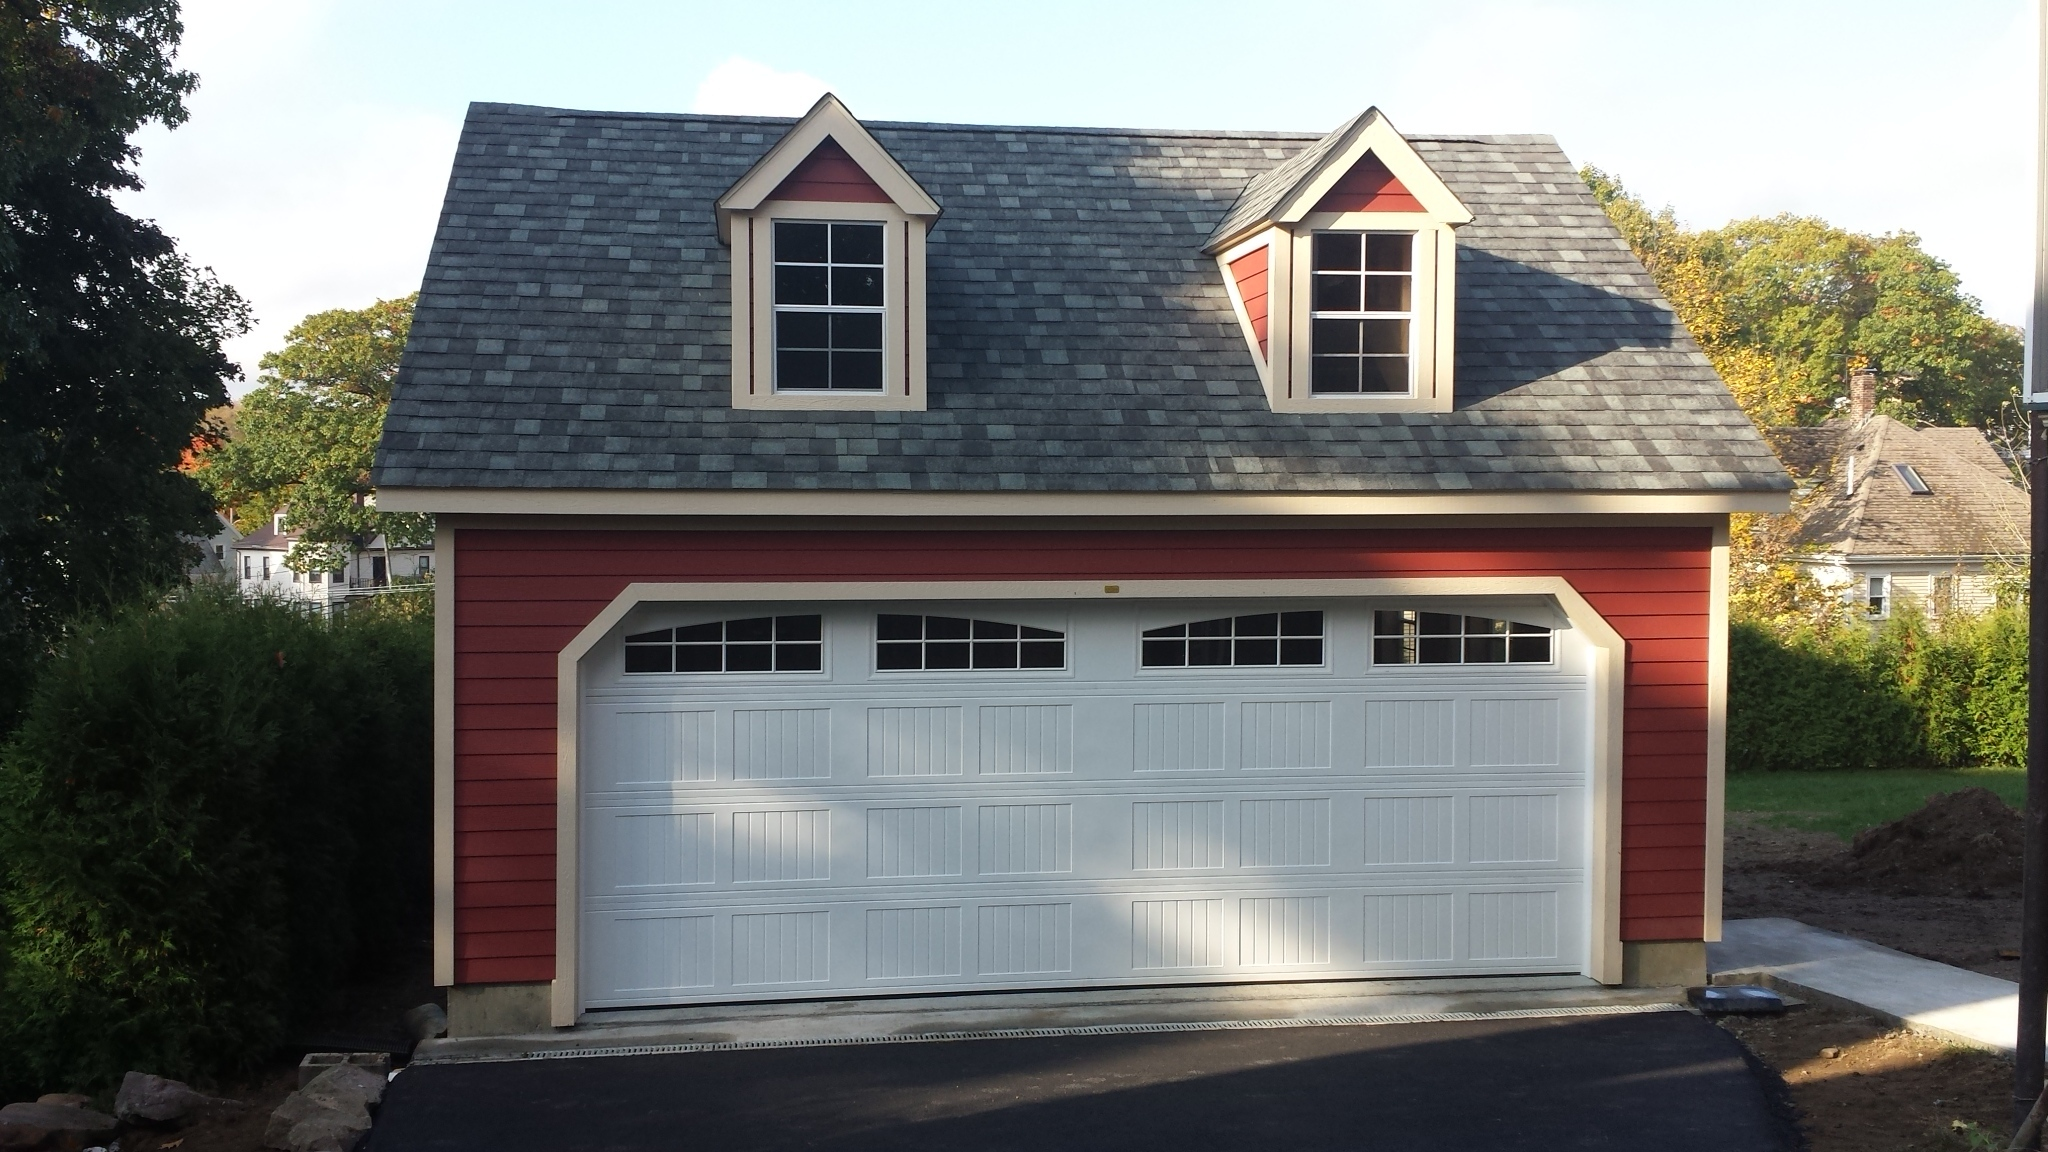 2 car garage homestead structures 2 car garage submited images